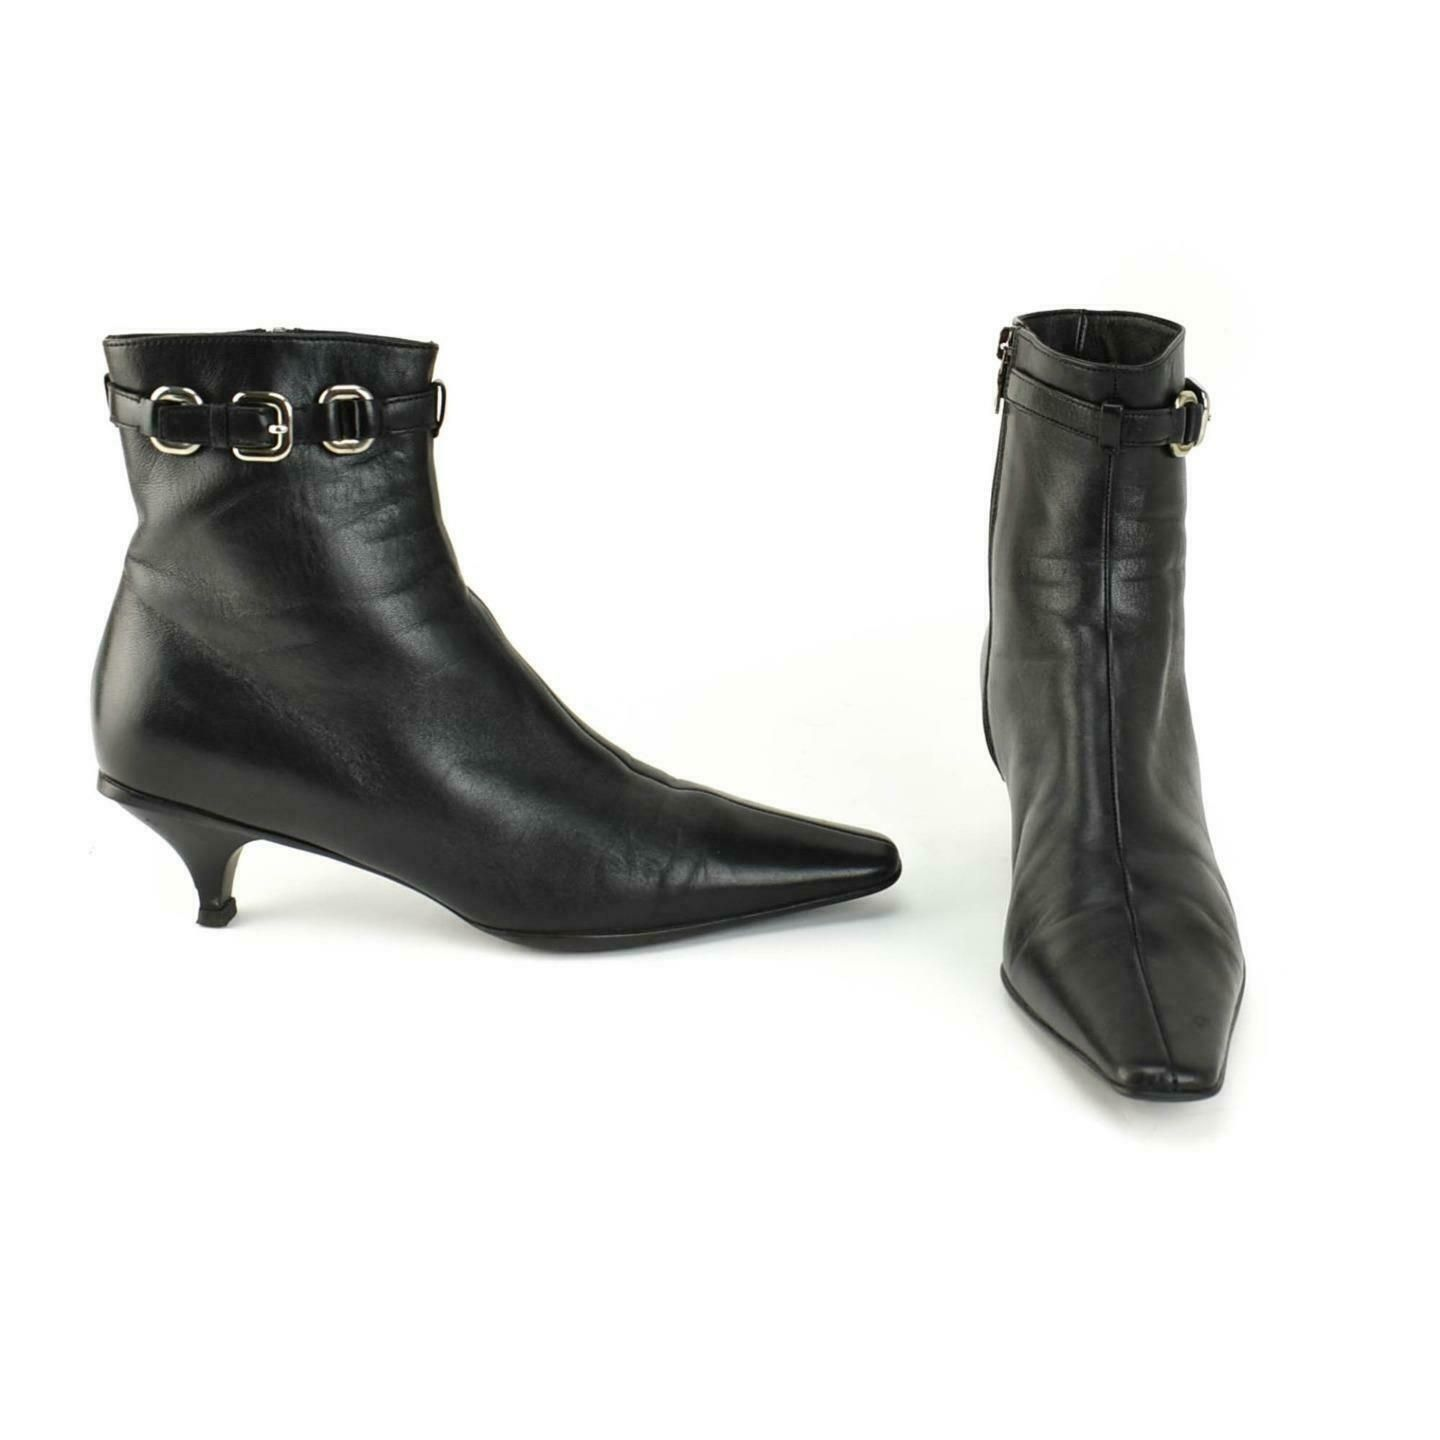 Logo Ankle Boots/Booties Sz: 8M